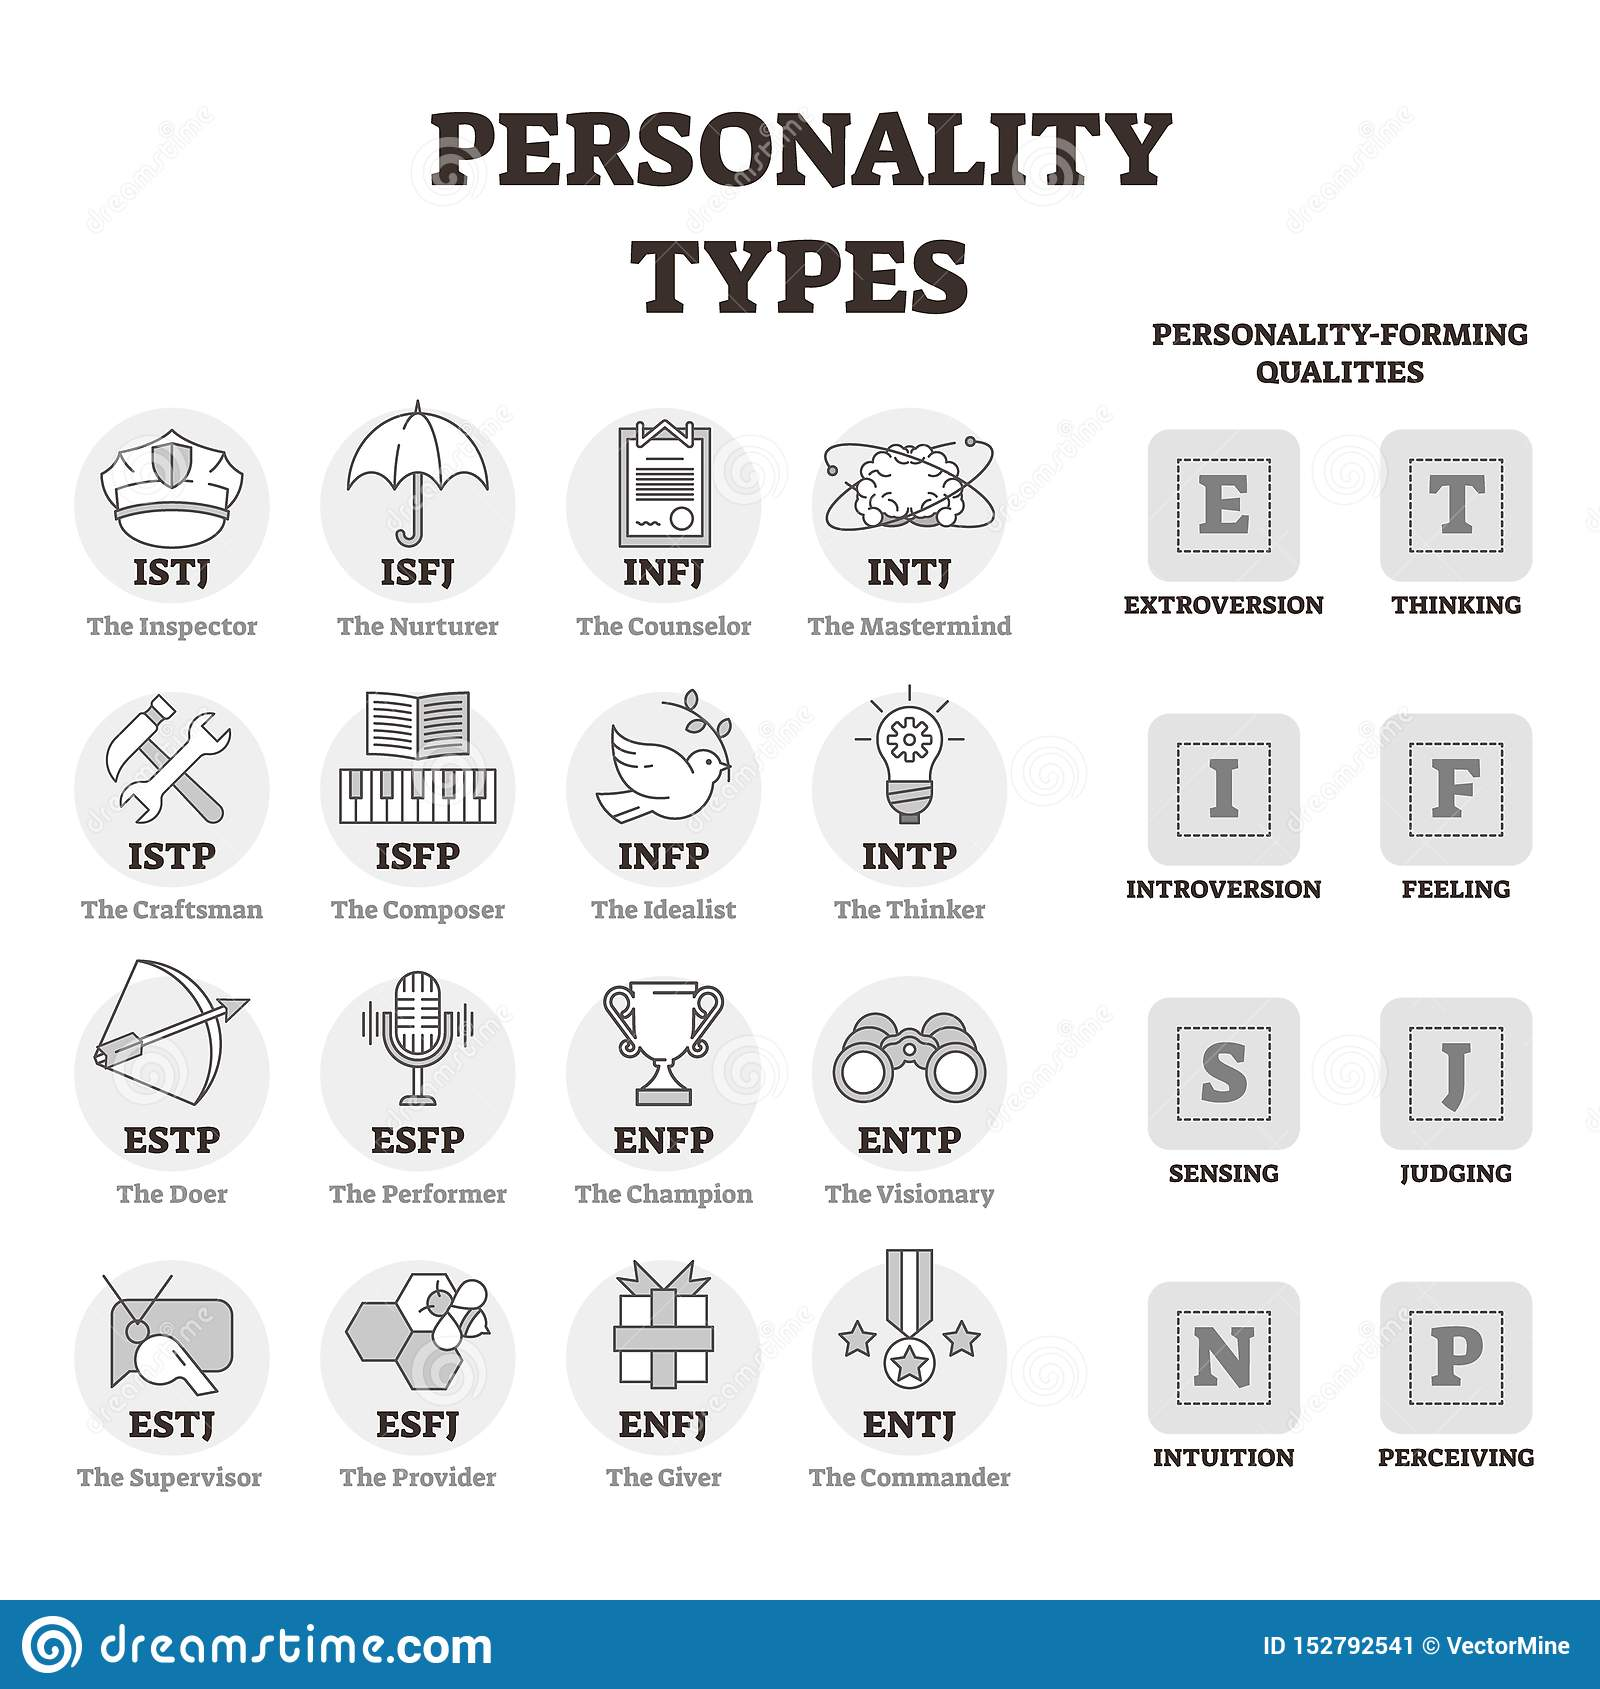 Personality types vector illustration. BW outlined person profile symbols.